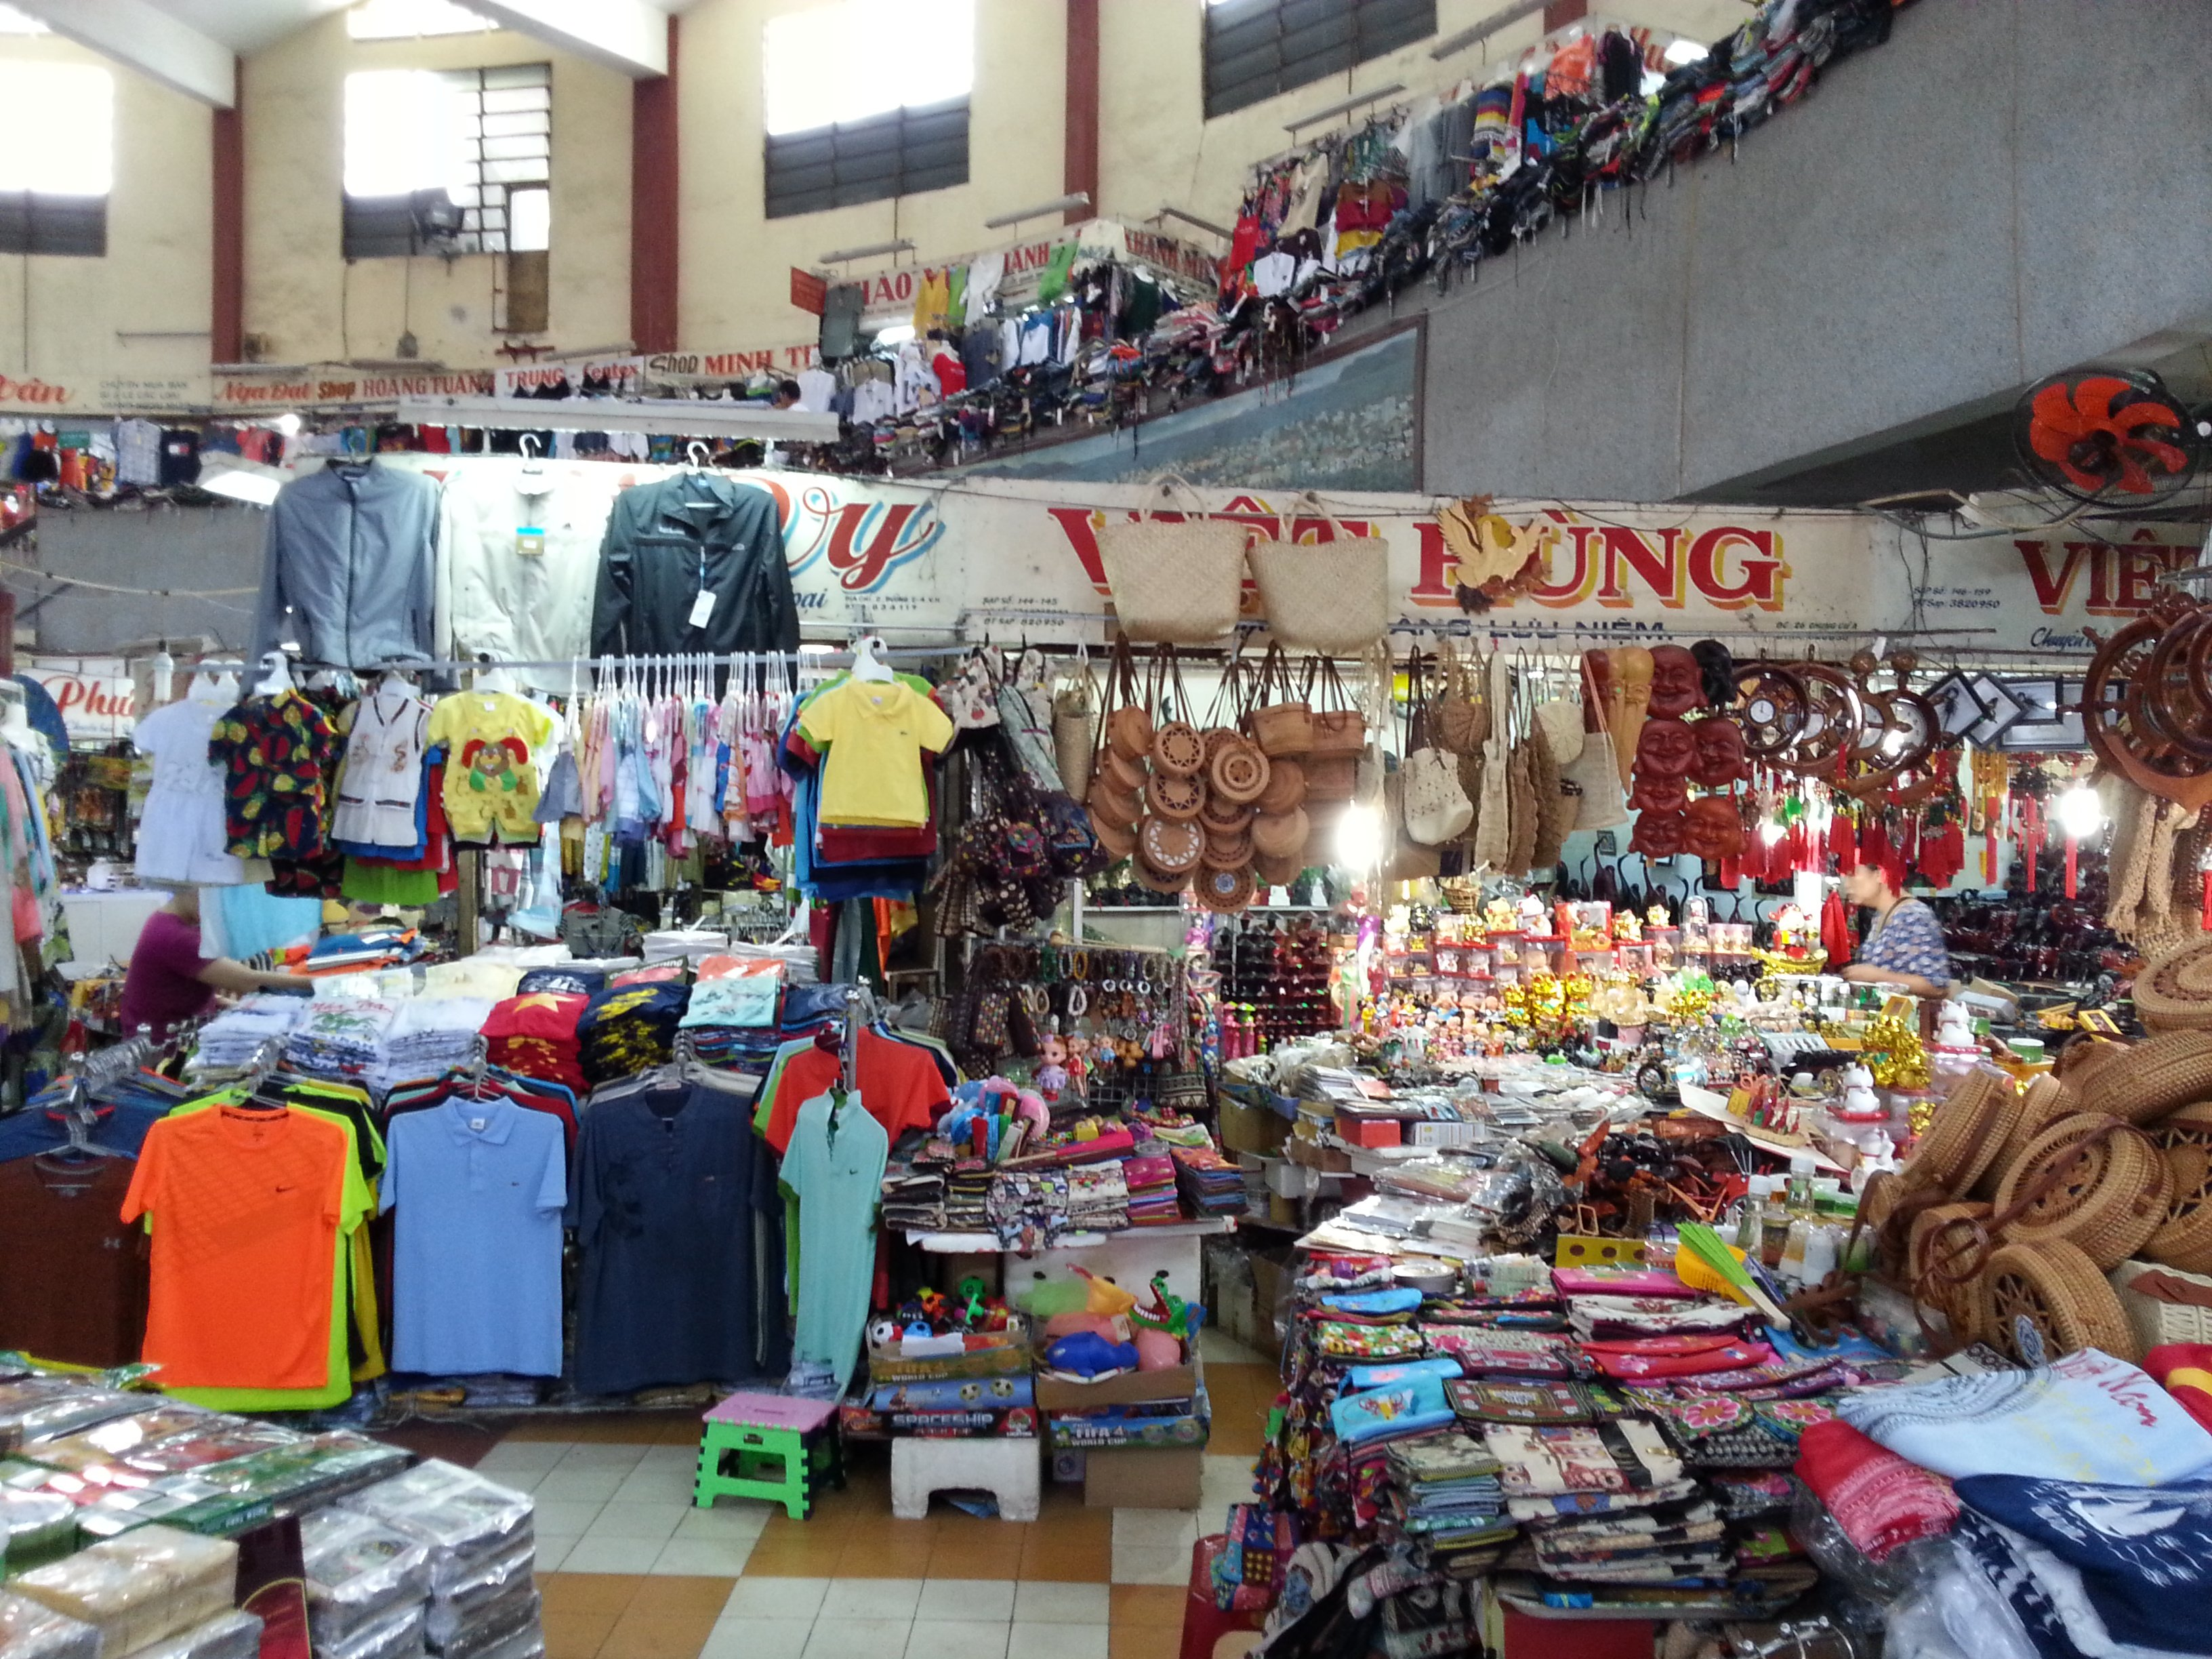 Inside the clothing market at Dam Market